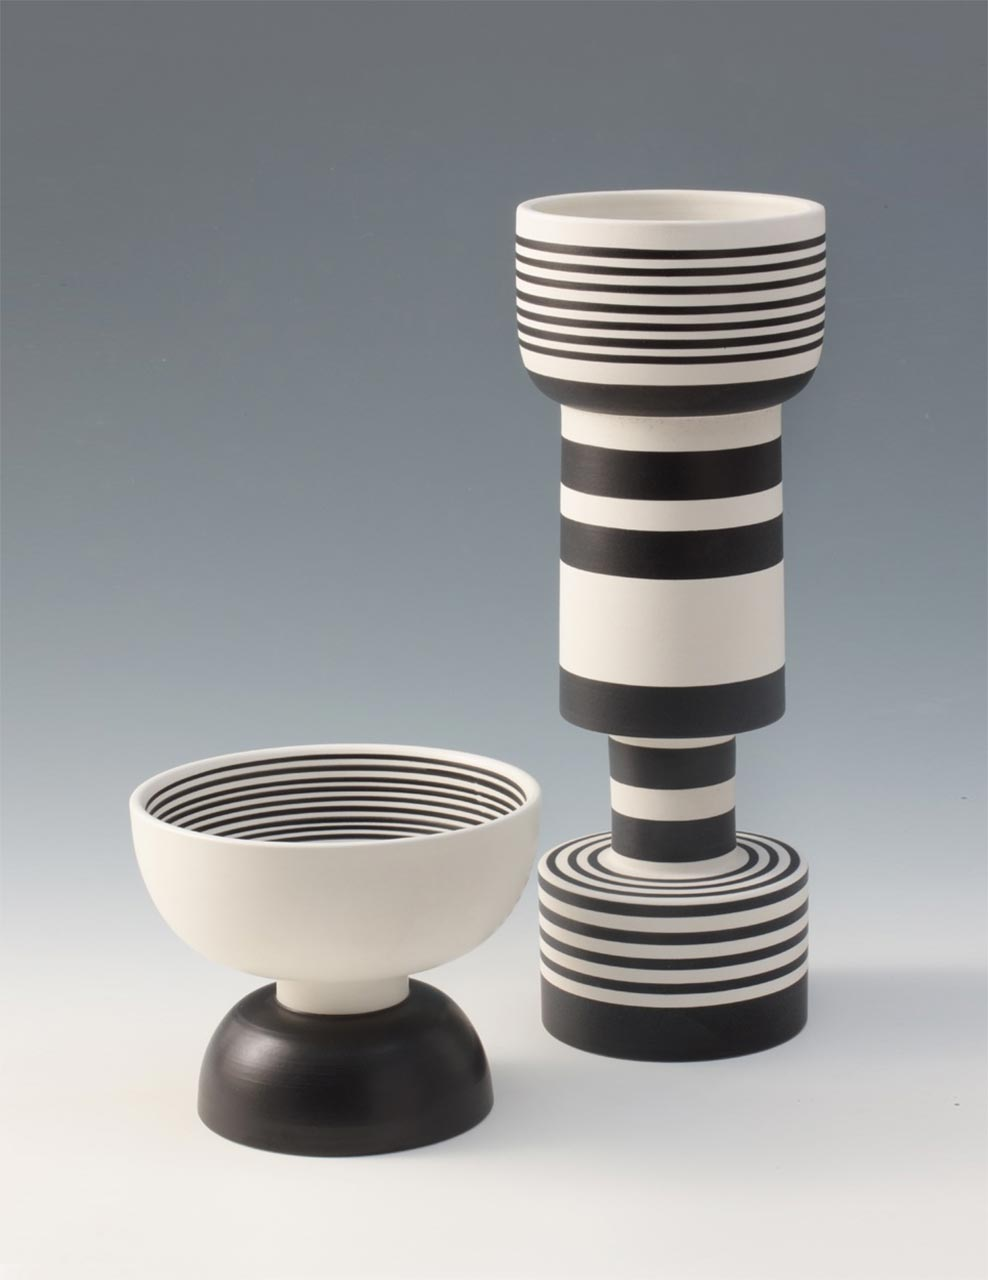 Ettore Sottsass, vessels for Bitossi (1957-59)